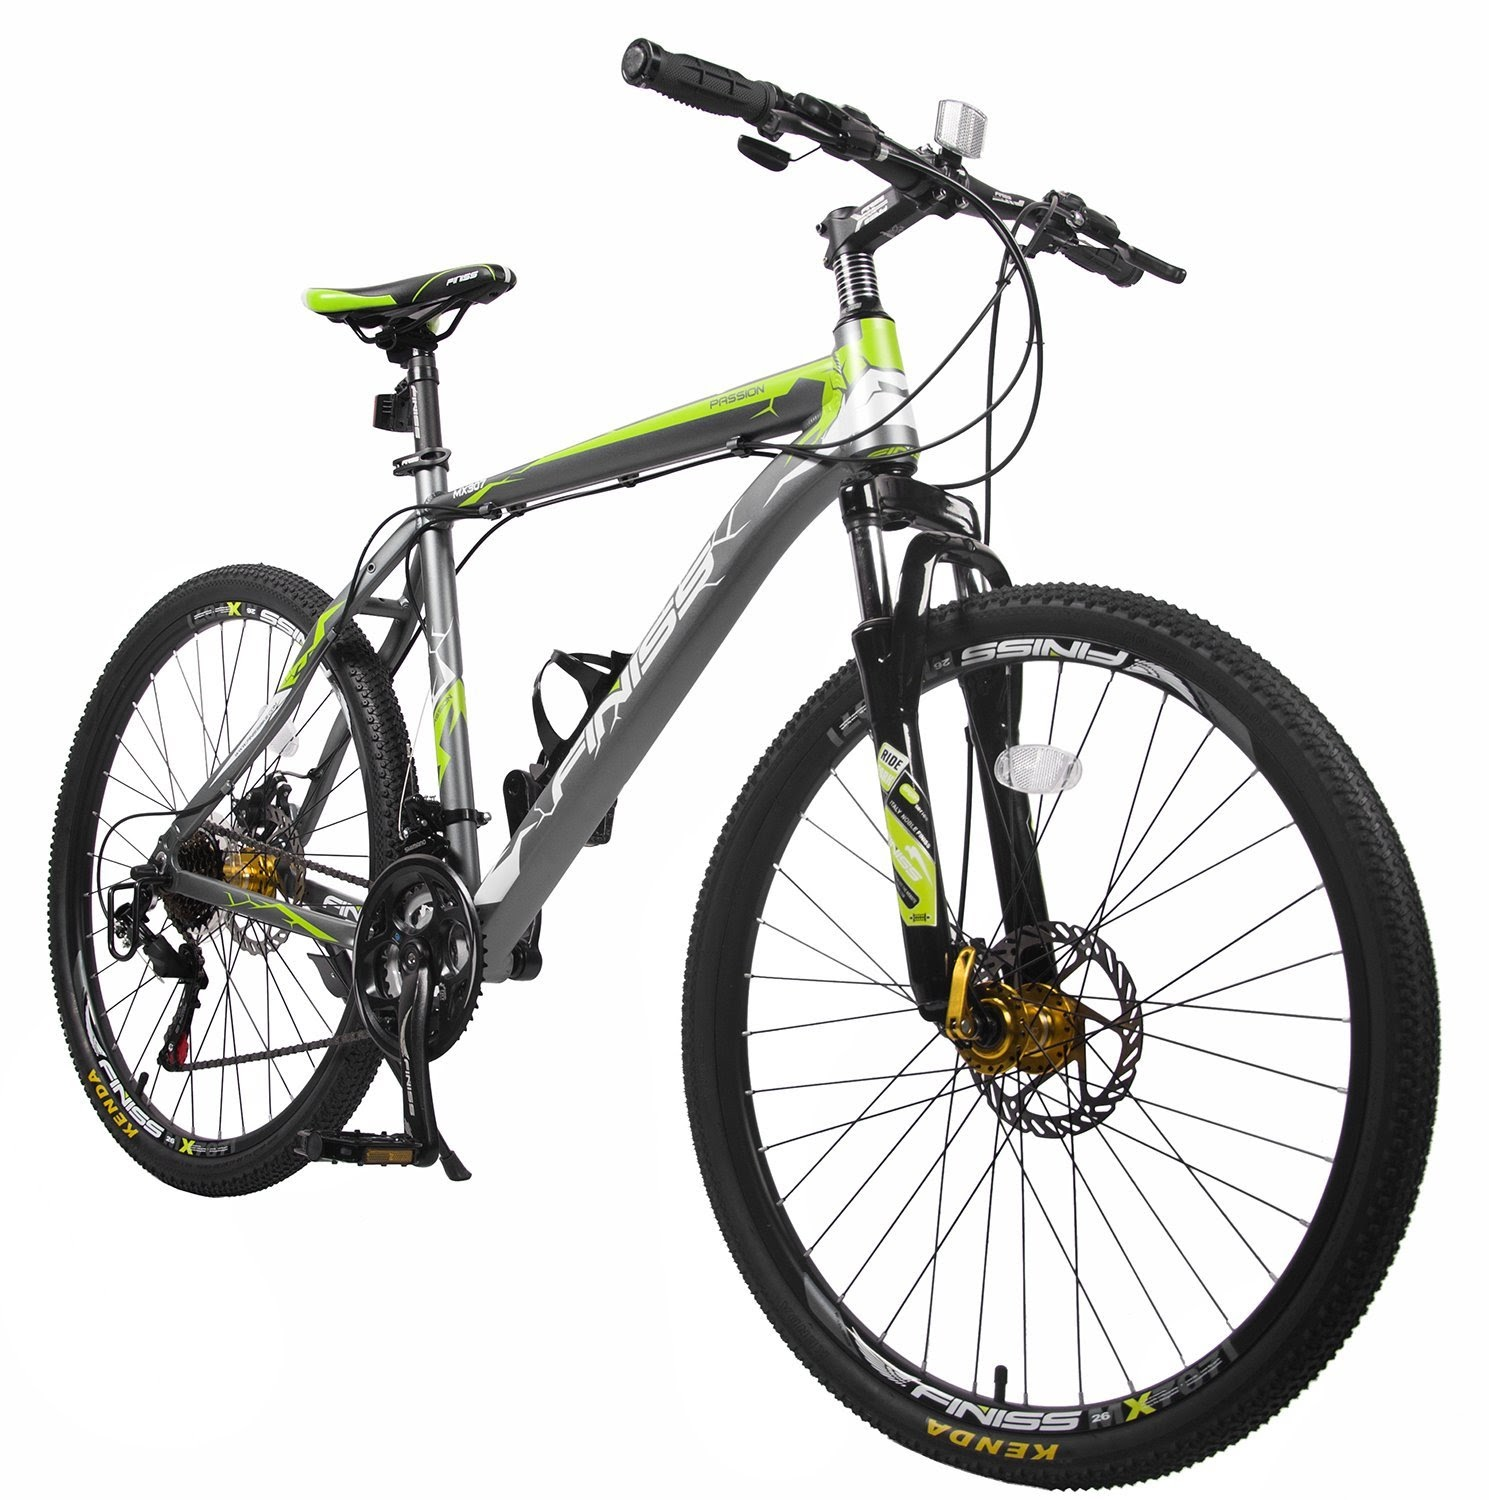 7b87ace8a90 Merax Finiss Mountain Bike, Aluminum, 21 Speeds, Disc Brakes, Fashion  Gray/Green. >>